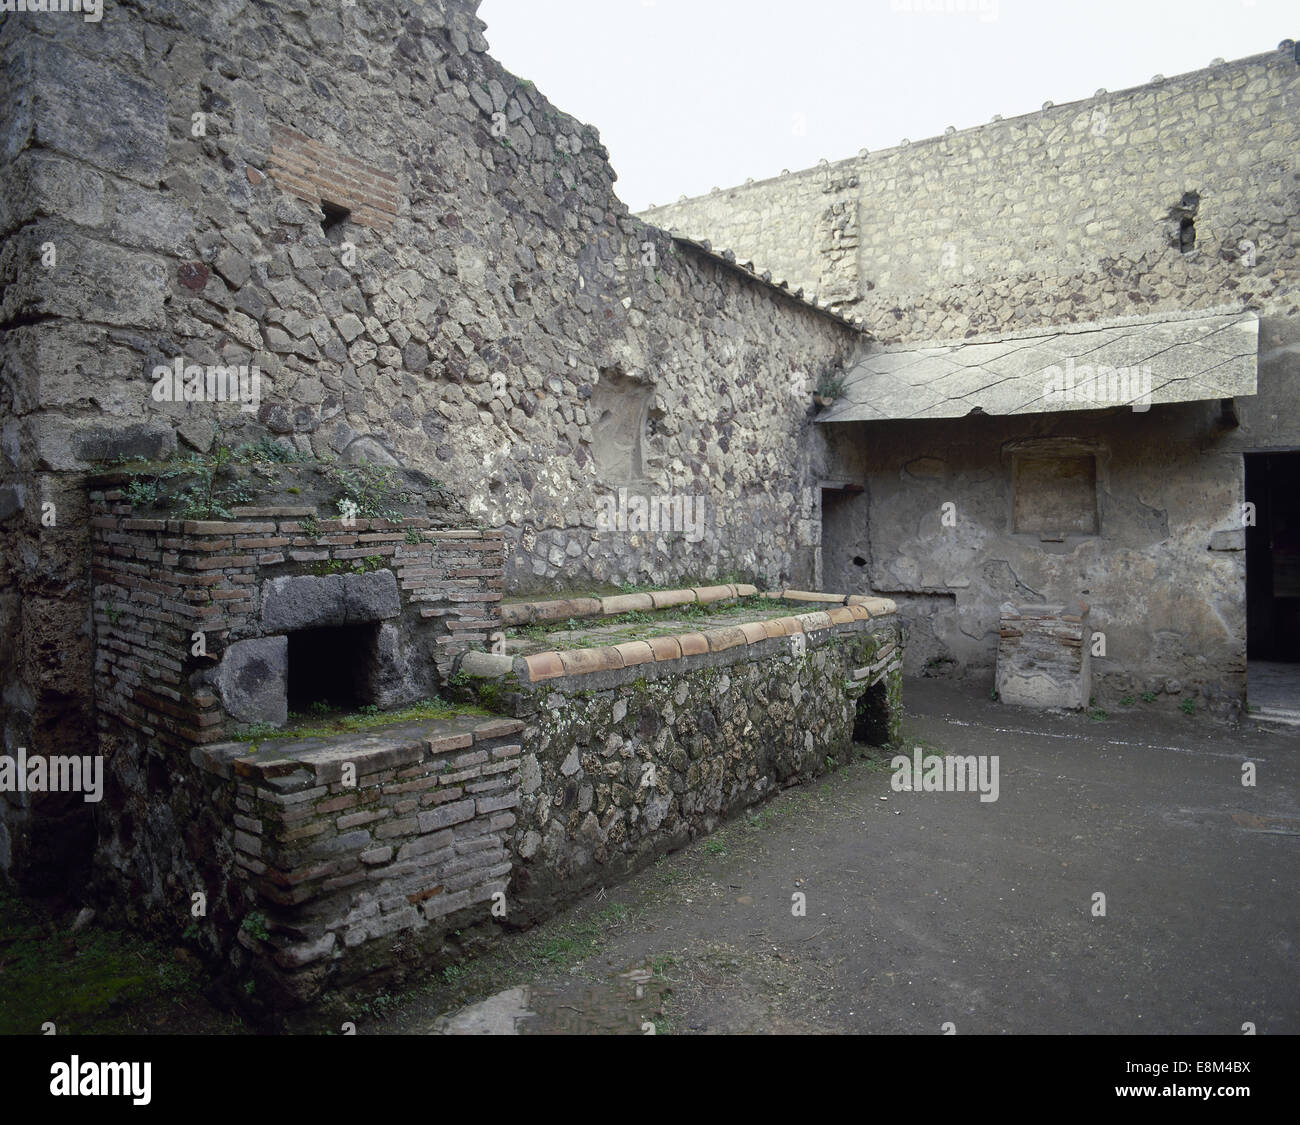 Italy. Pompeii. Villa of the Mysteries. Built in the 2nd BC and reformed Imperial era. - Stock Image